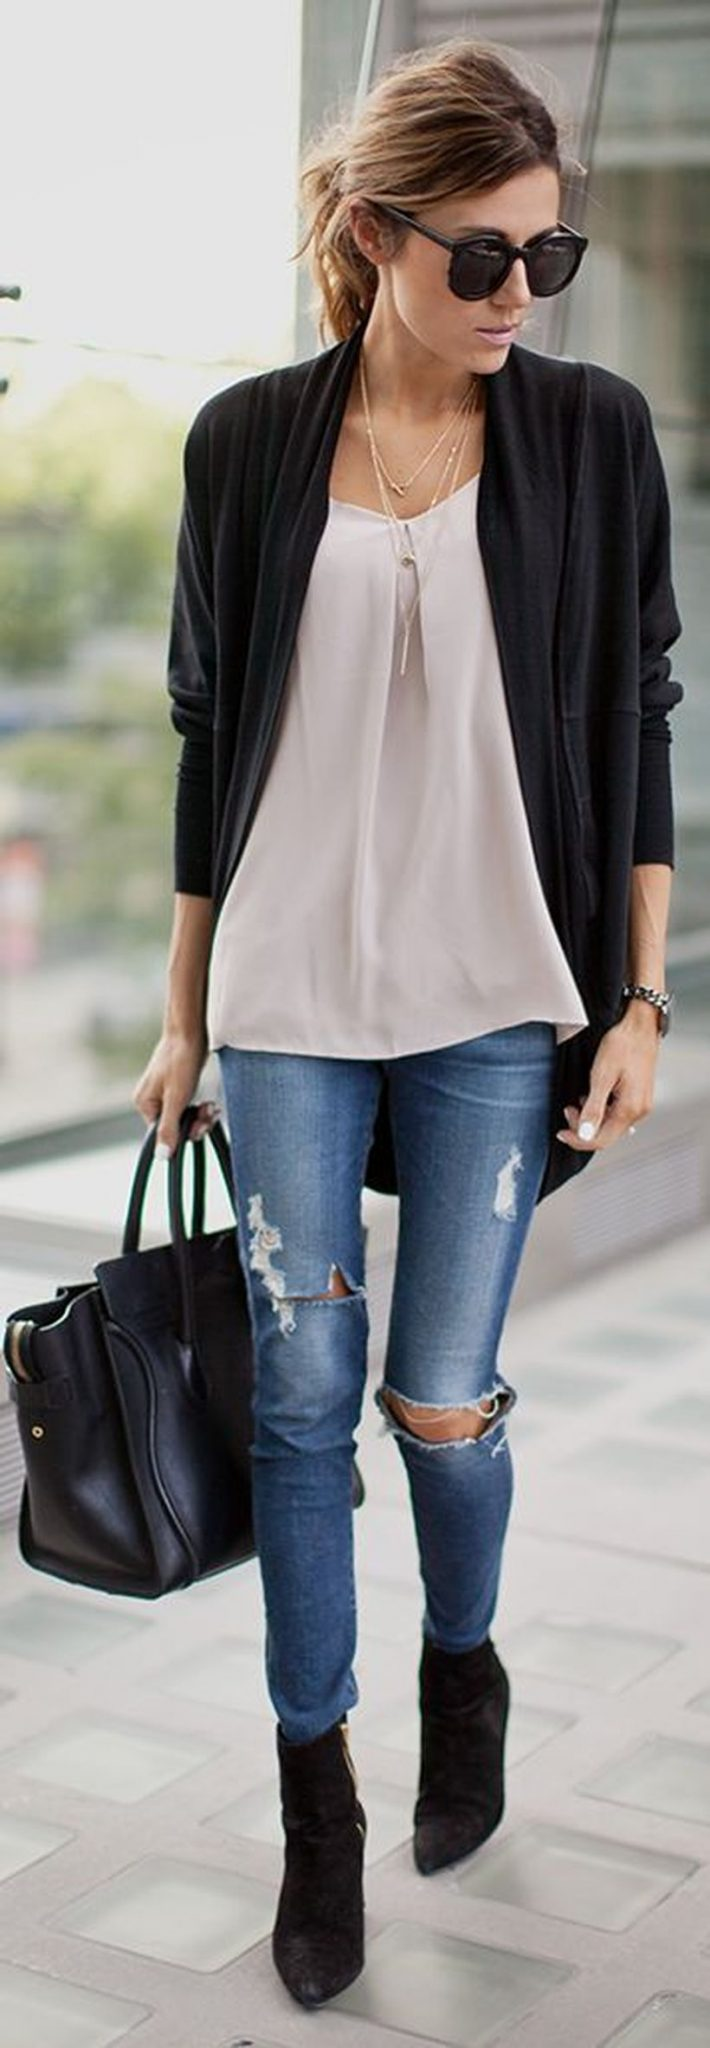 Best Casual Fall Night Outfits Ideas For Going Out 18 - Fashion Best